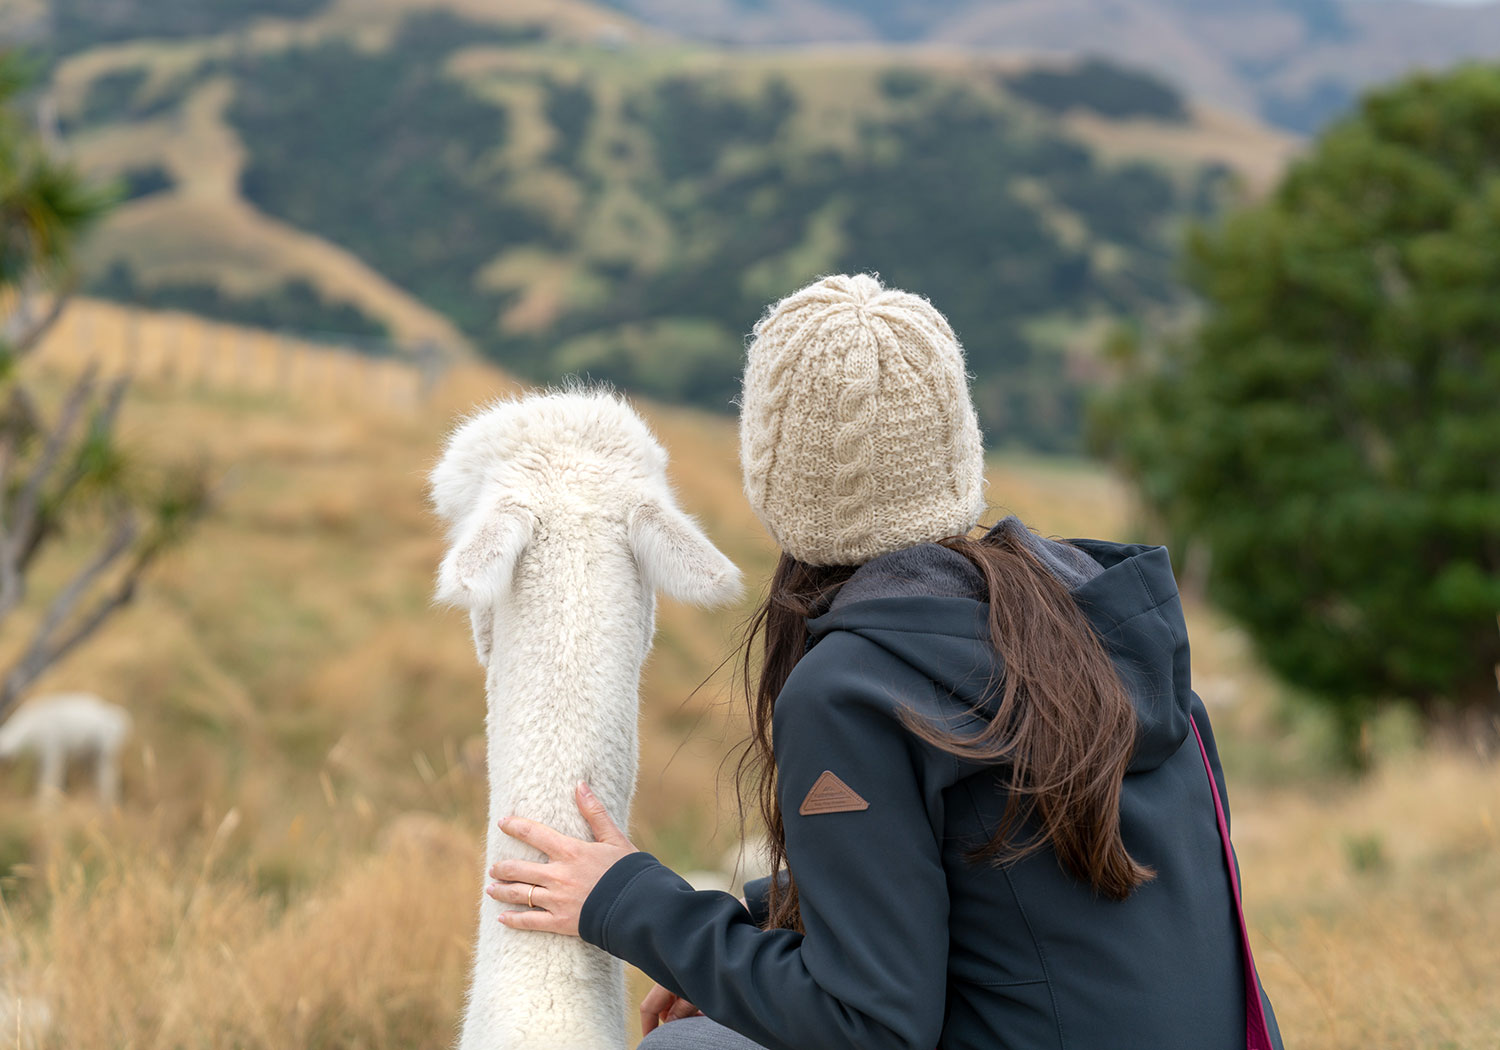 Thaneeya McArdle with an alpaca at Shamarra Alpaca Farm in Akaroa, New Zealand